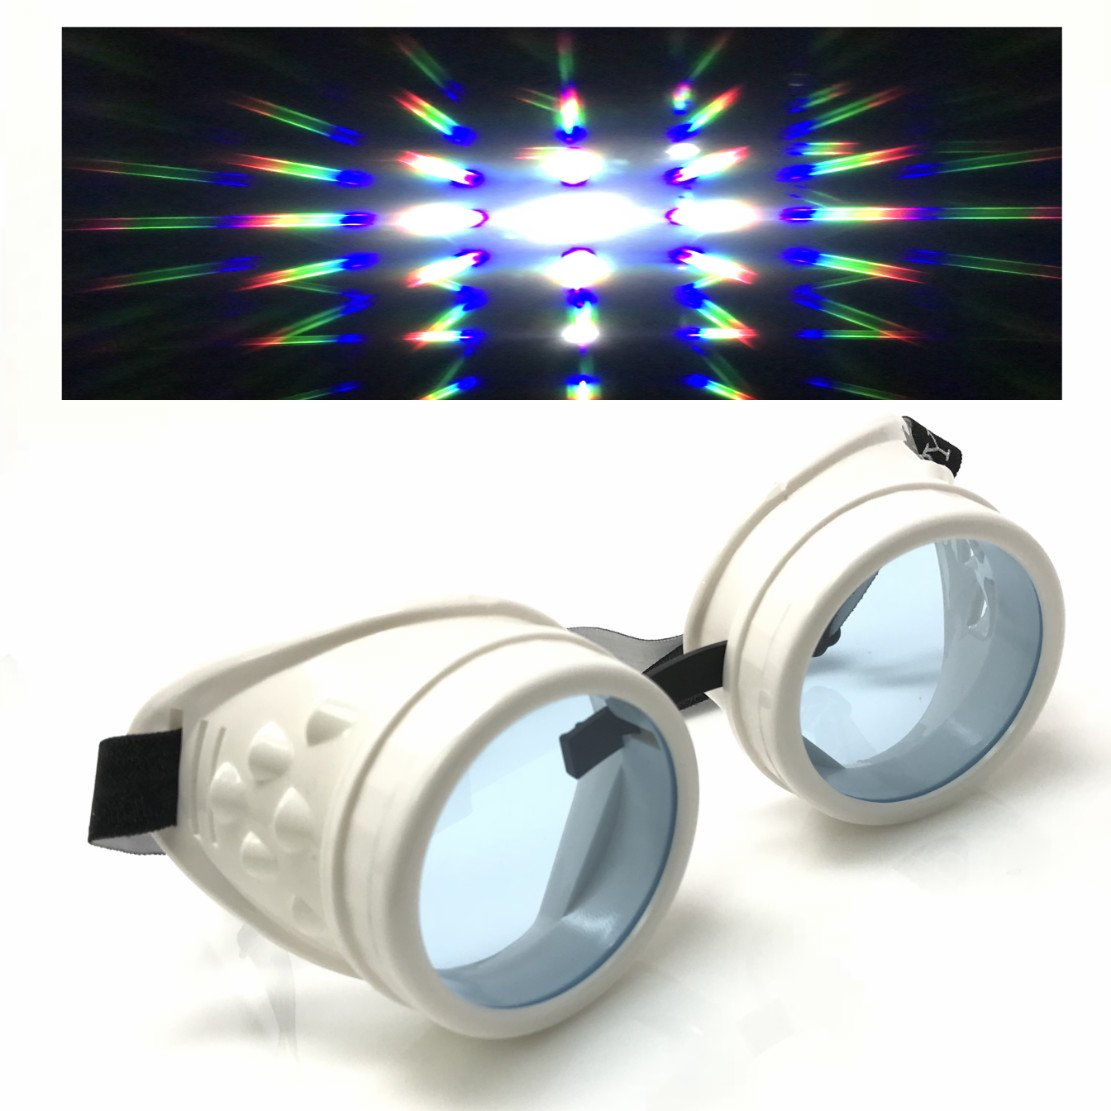 UV Glow in The Dark Steampunk Rave Goggles Prism Diffraction Round Retro Glasses cw clear prism diffraction